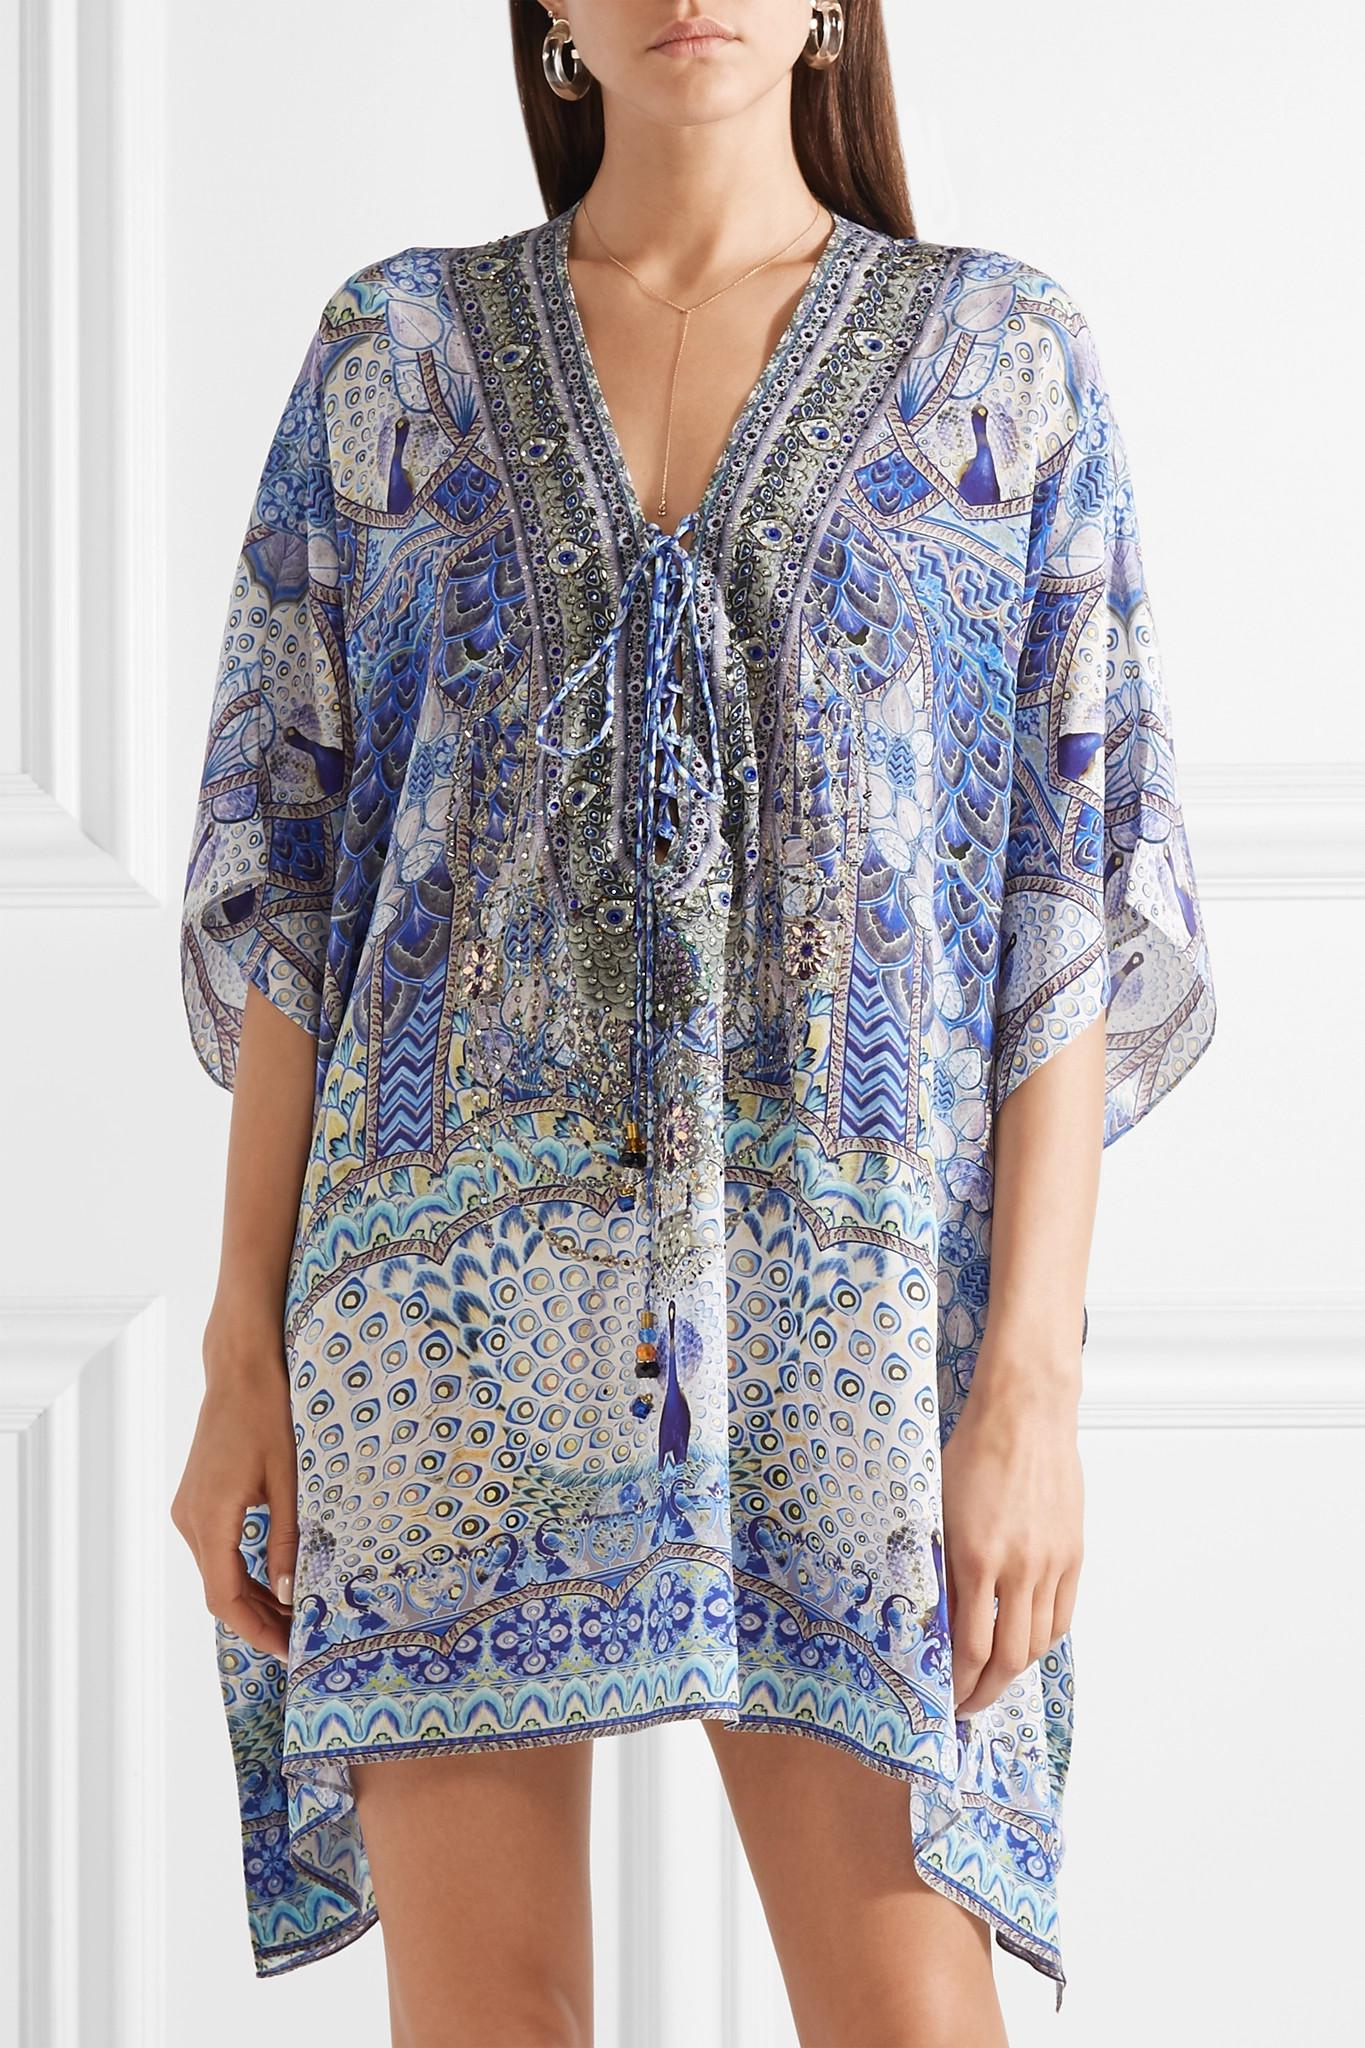 Low Cost Sale Online Lovers Retreat Embellished Silk Crepe De Chine Kaftan - Blue Camilla New Release Amazing Price 100% Original For Sale OYLuO6bLQ8